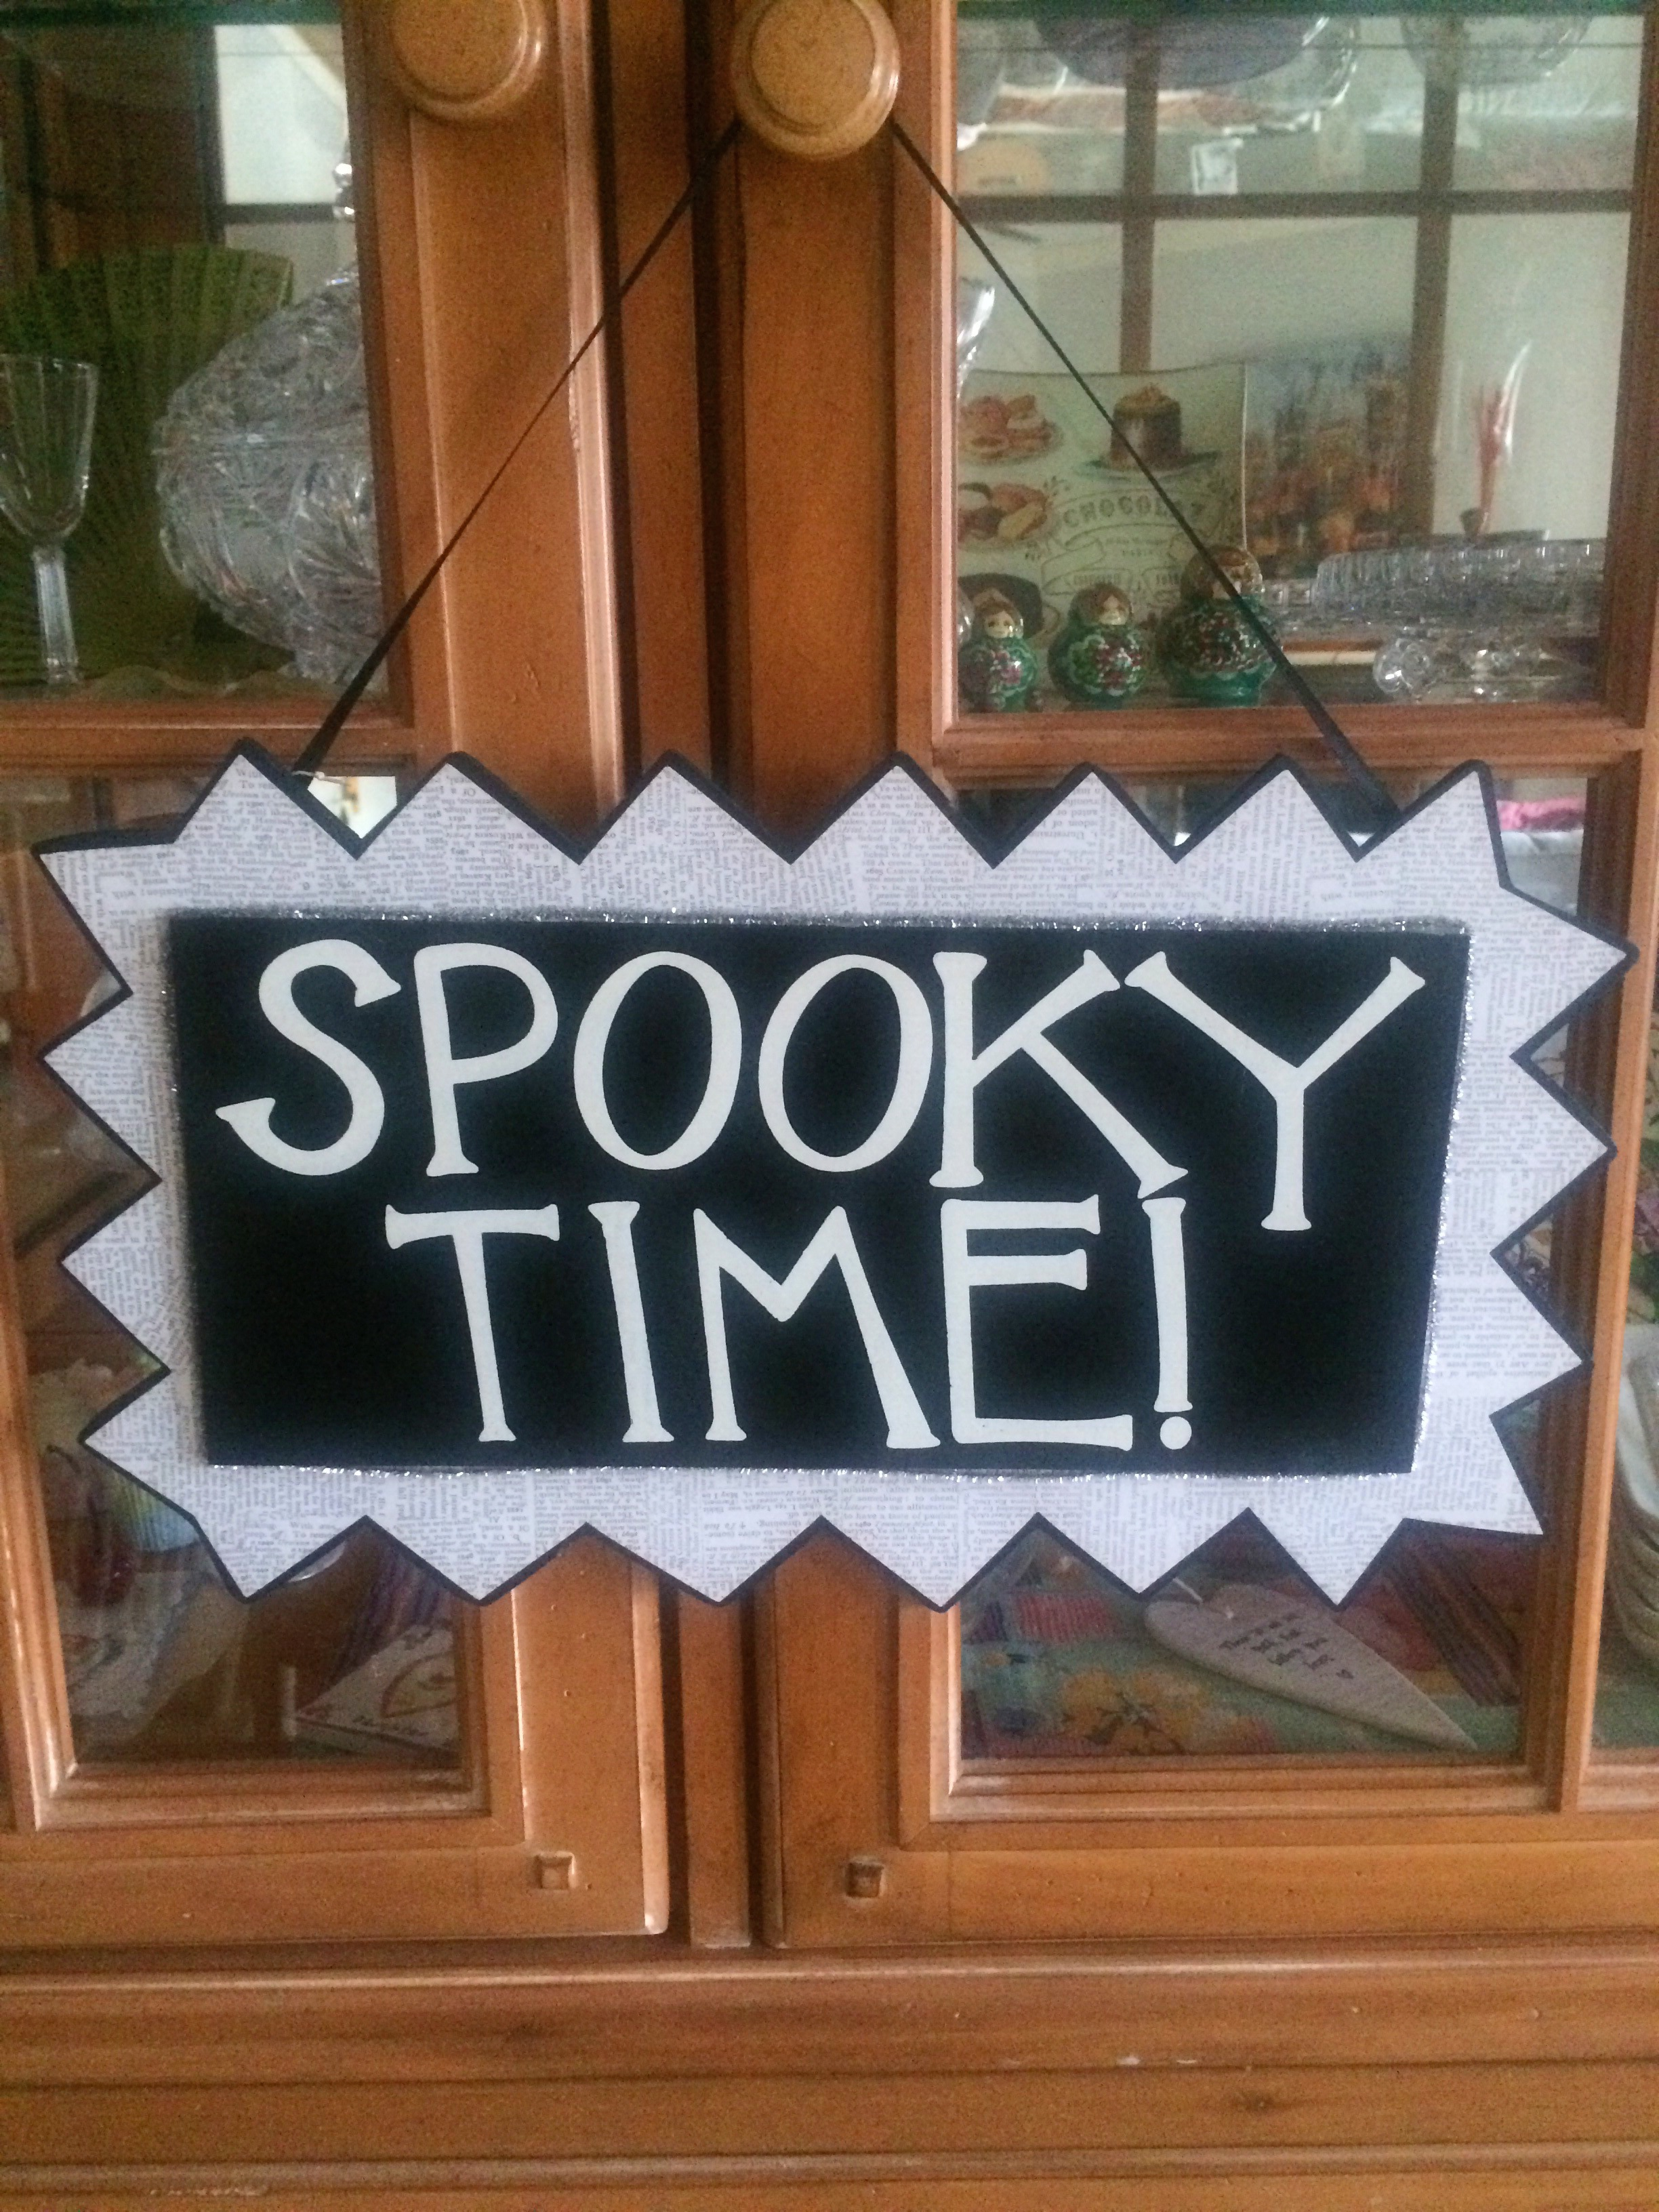 Spooky Time!